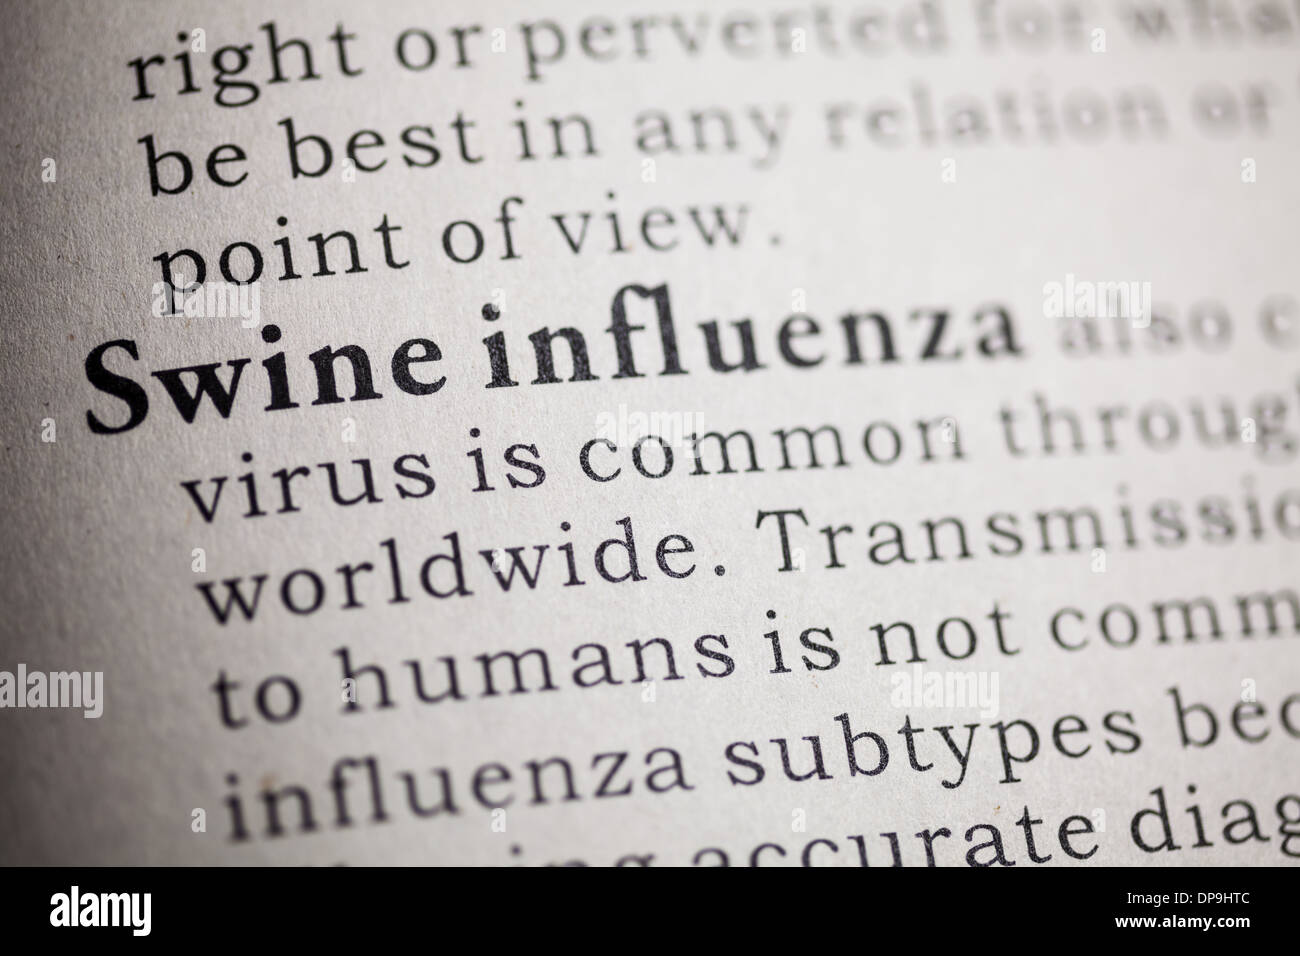 Fake Dictionary, Dictionary definition of Swine influenza. - Stock Image